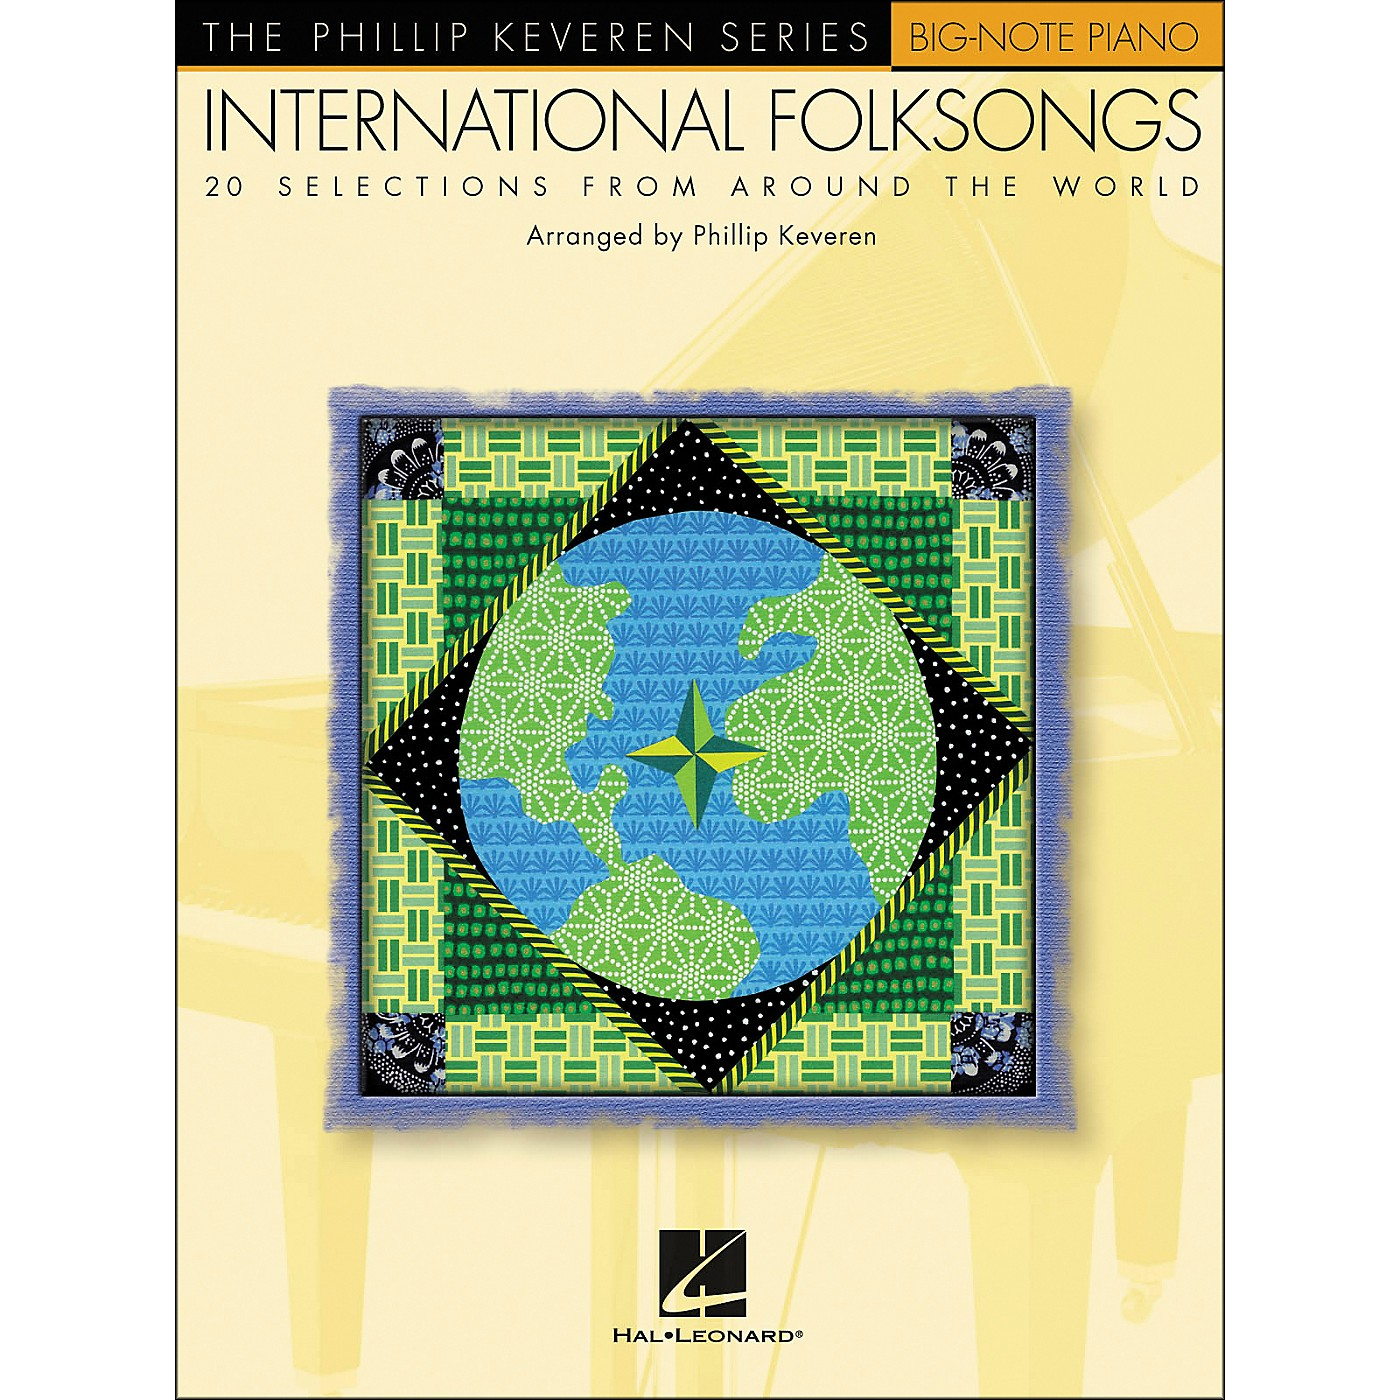 Hal Leonard International Folksongs - 20 Folksongs Arranged By Phillip Keveren for Big Note Piano thumbnail